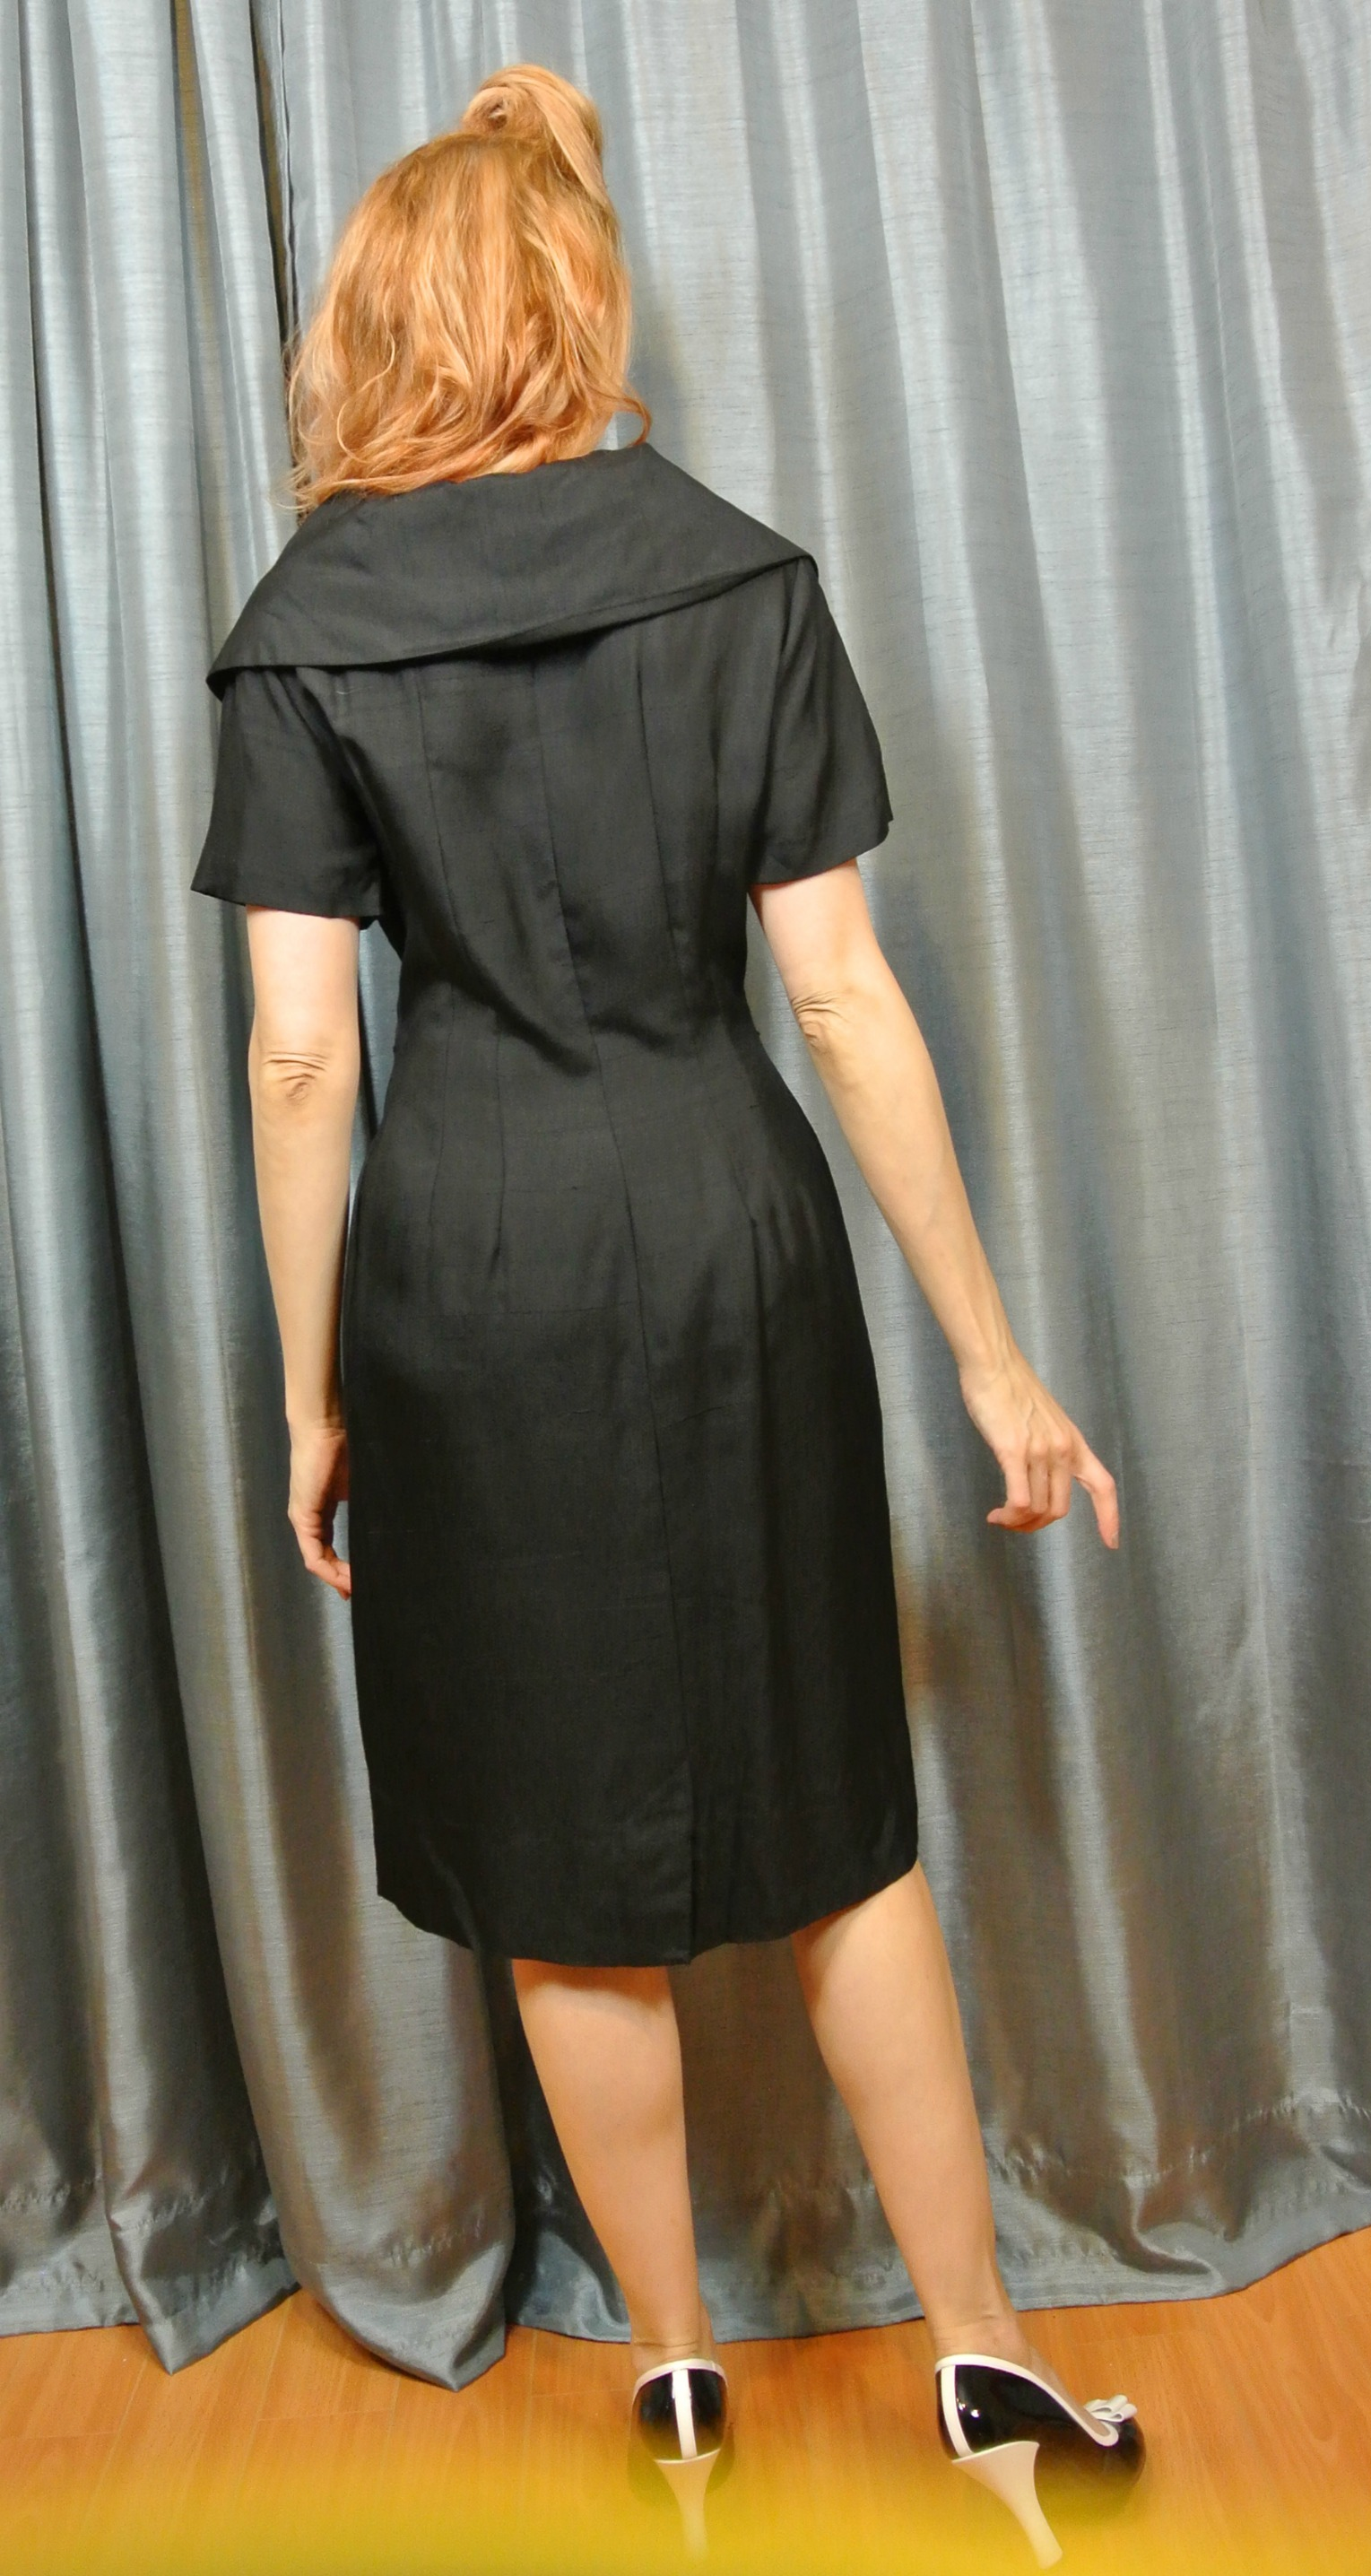 Stiletto City Store - Black Vintage Dress Back View